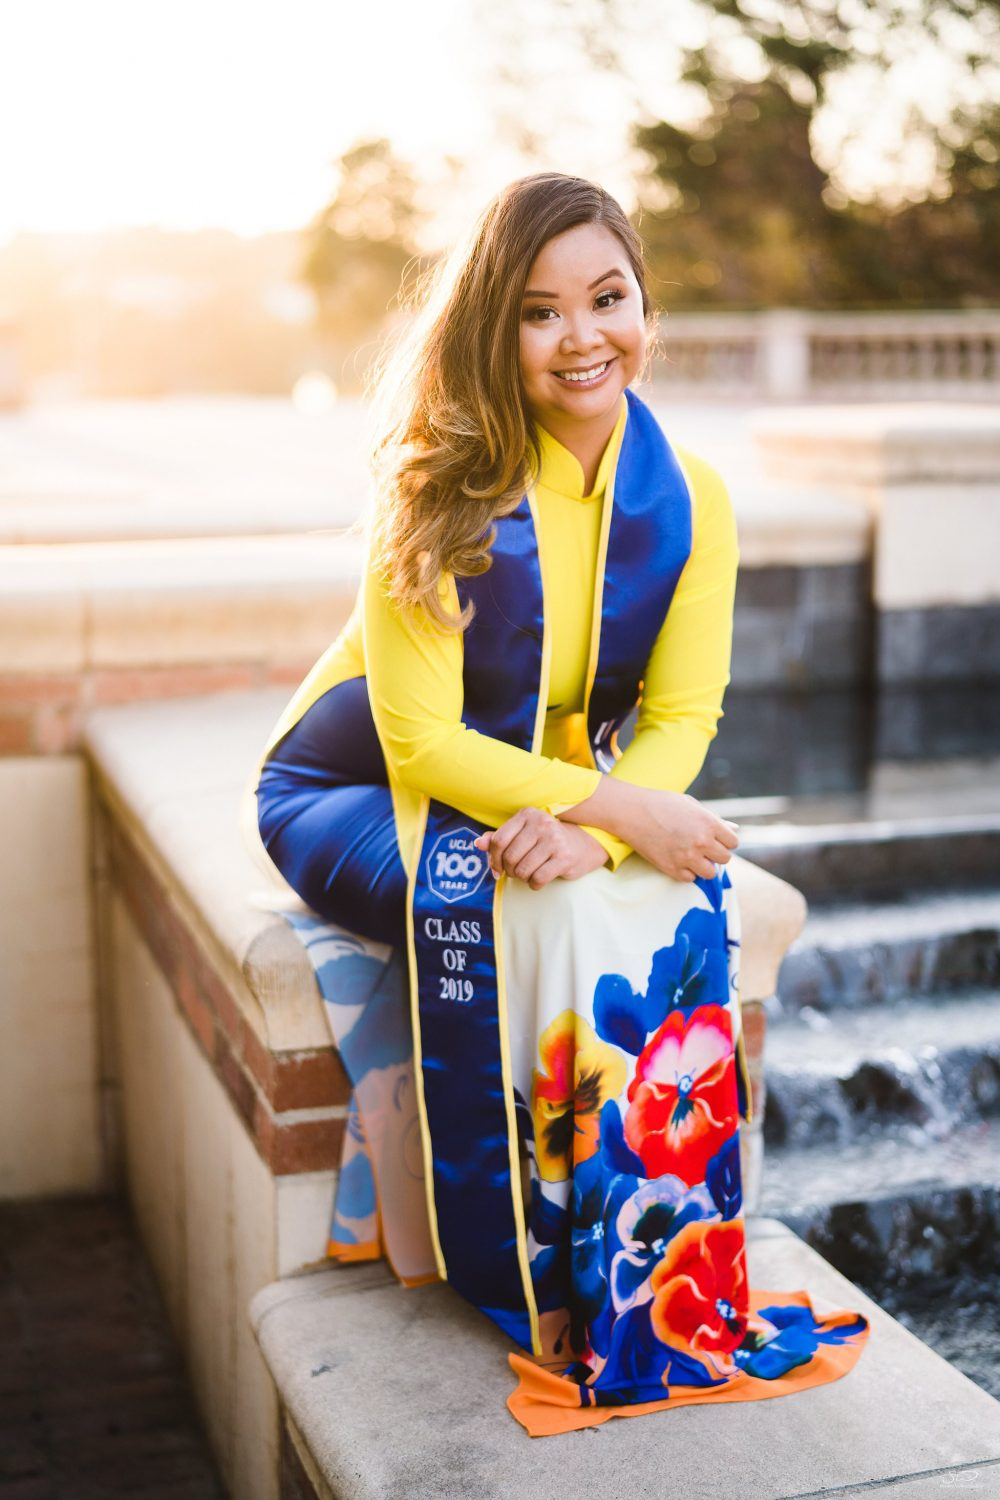 usc ucla los angeles graduation senior portrait photographer183